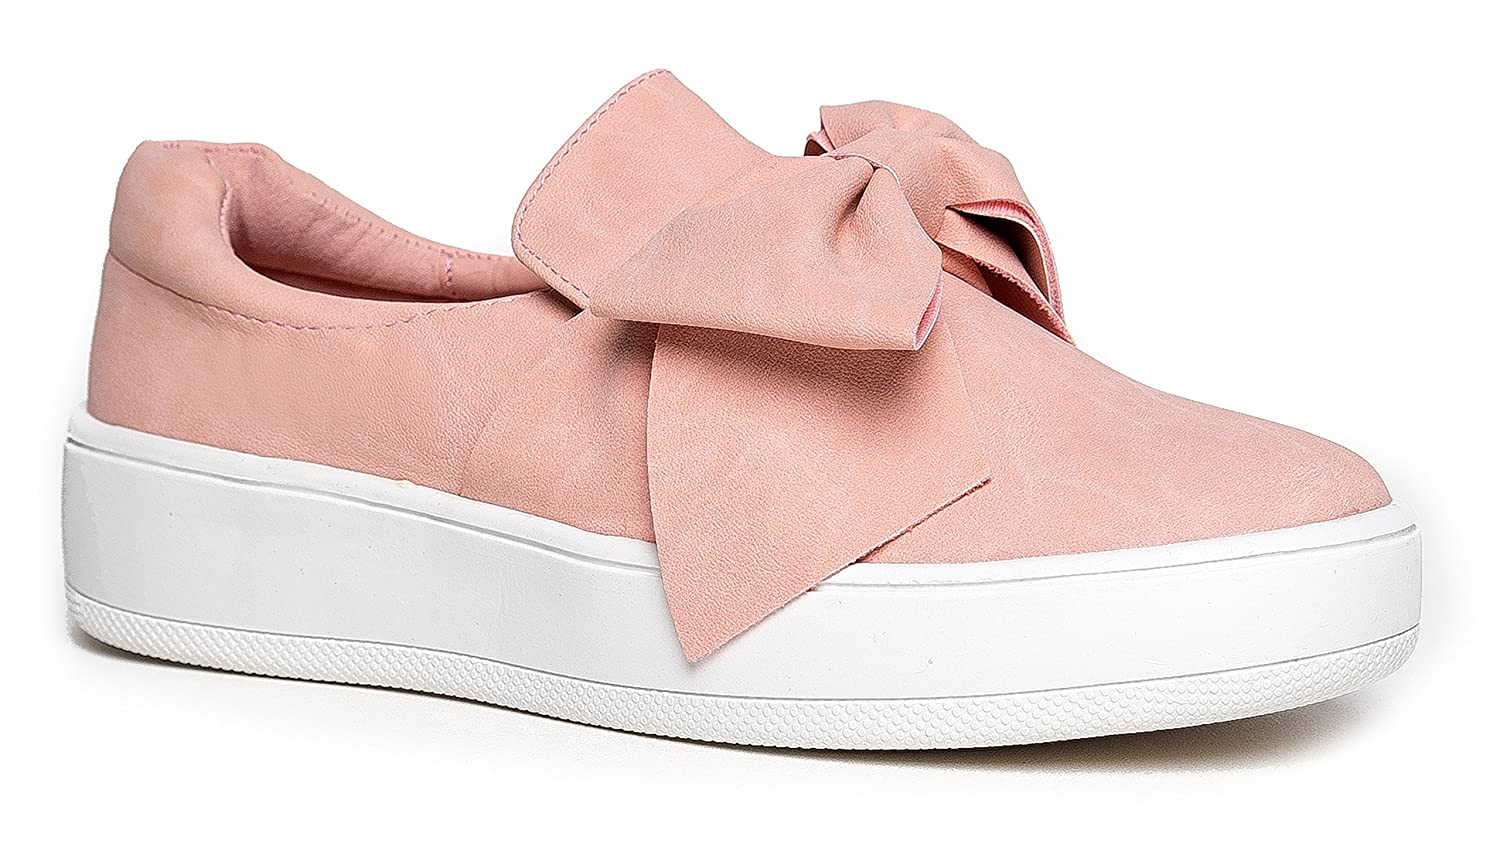 J. Adams Bow Platform Slip on – Trendy Flatform Shoes - Comfortable Closed Toe Sneakers – Wally B071DTTLJ7 8 B(M) US|Bow Pink Nbpu